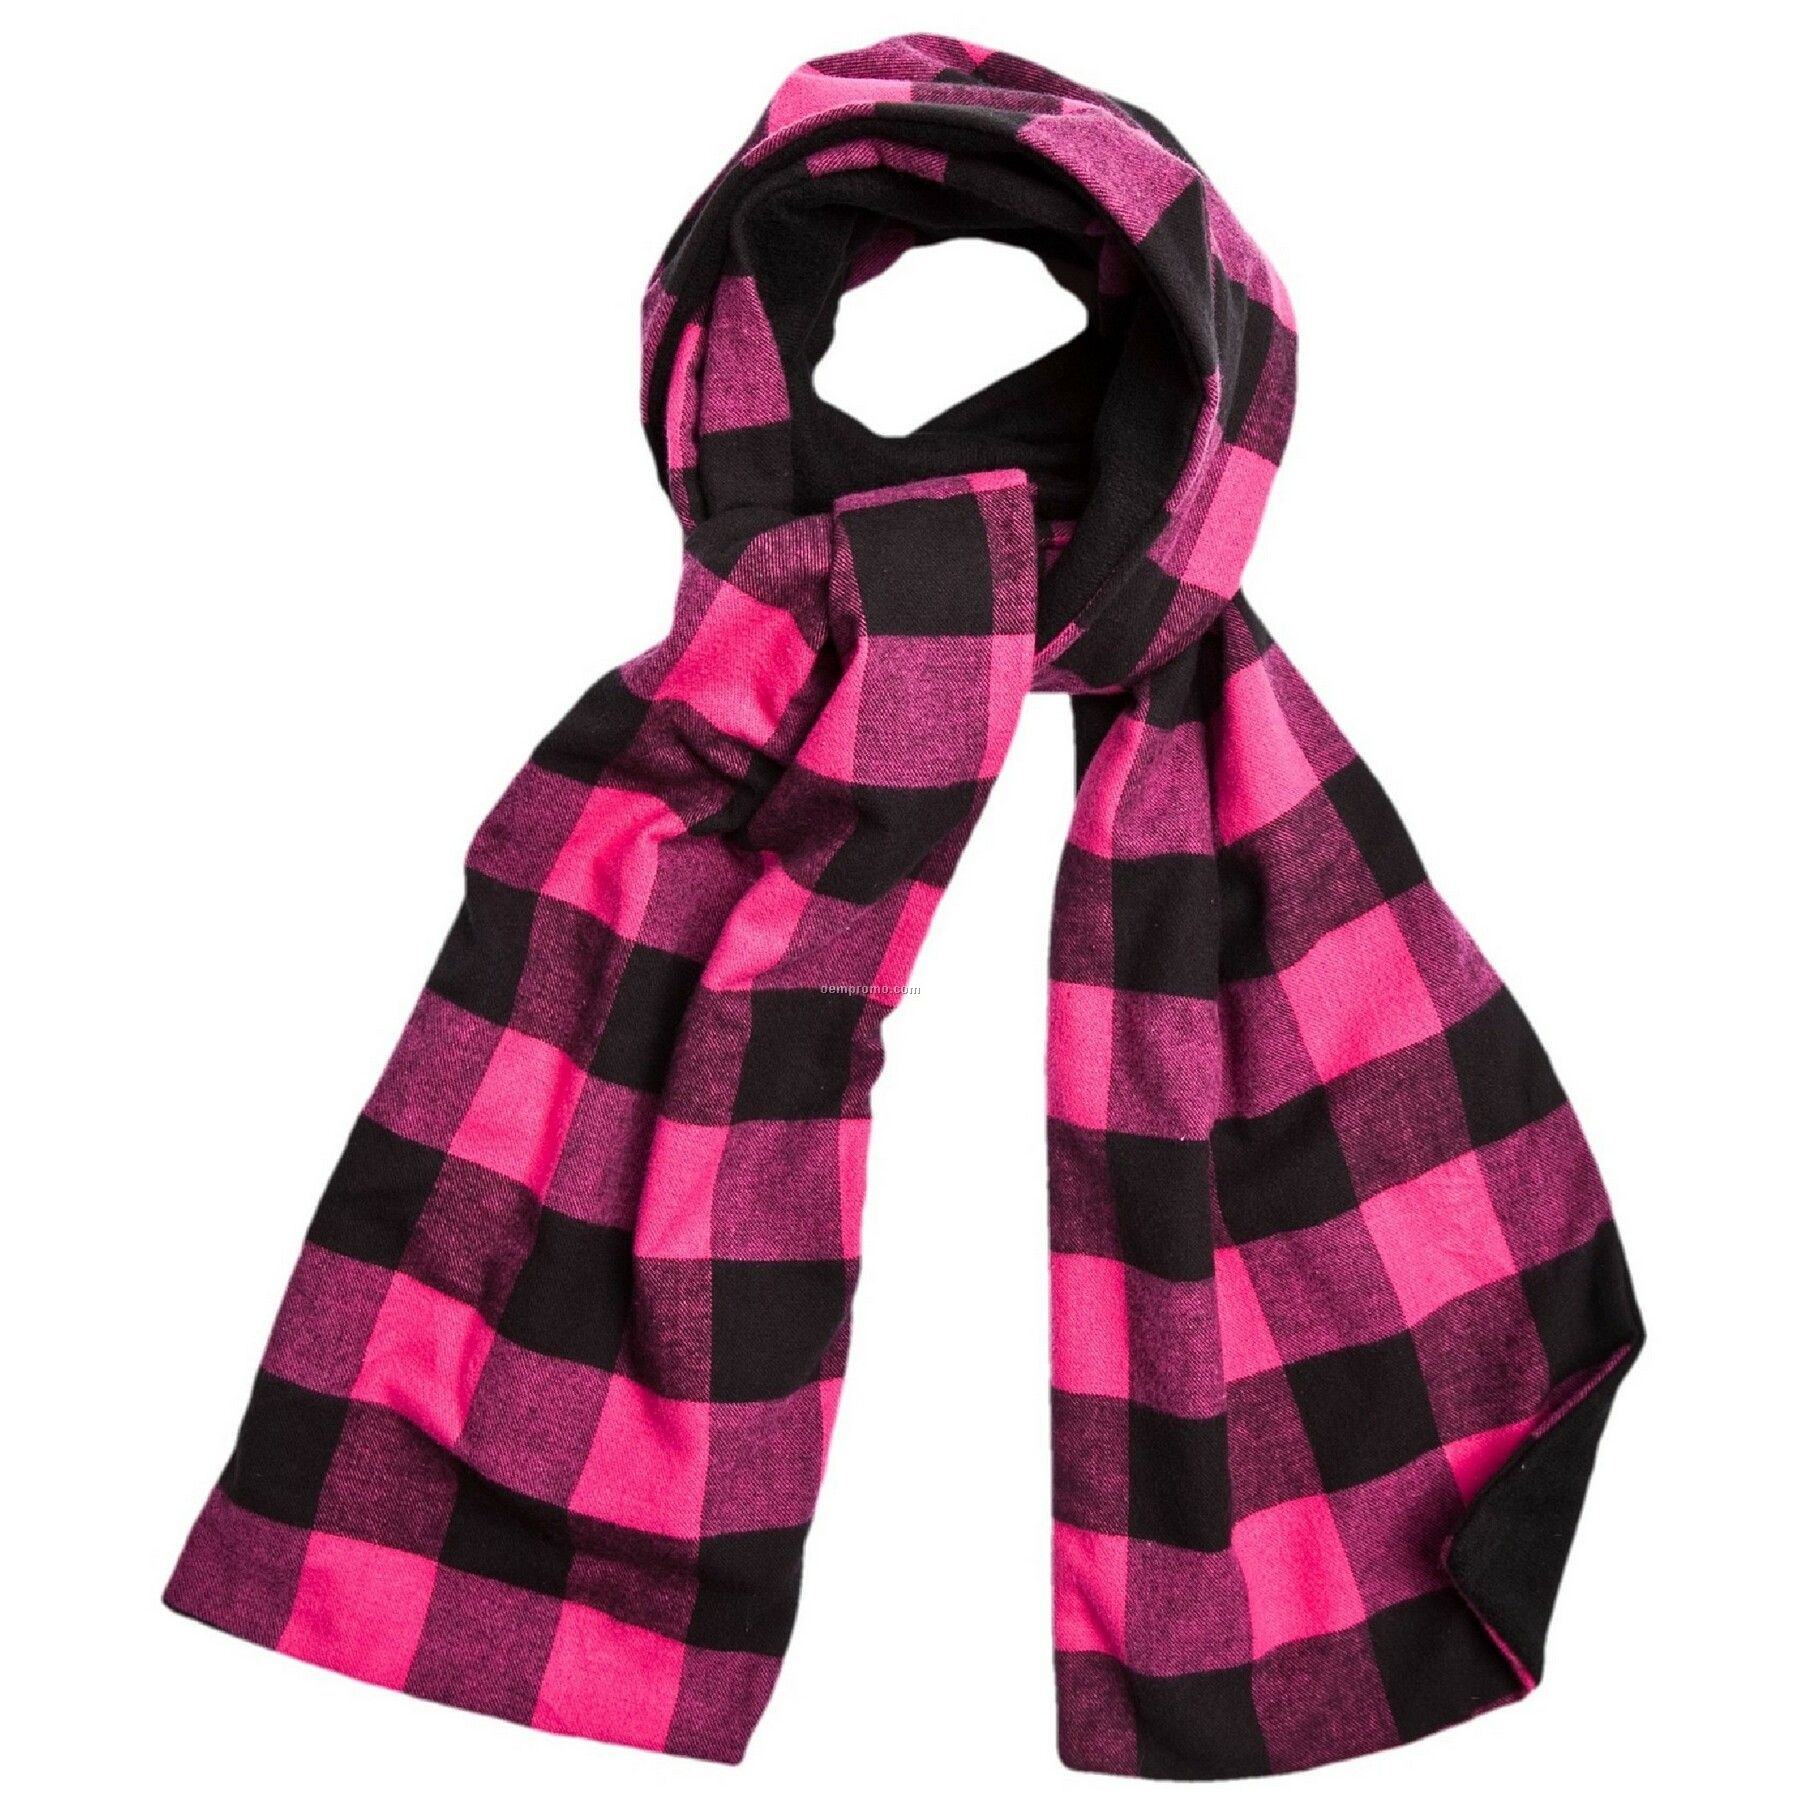 for sure fuchsia pink flannel scarf w black fleece china